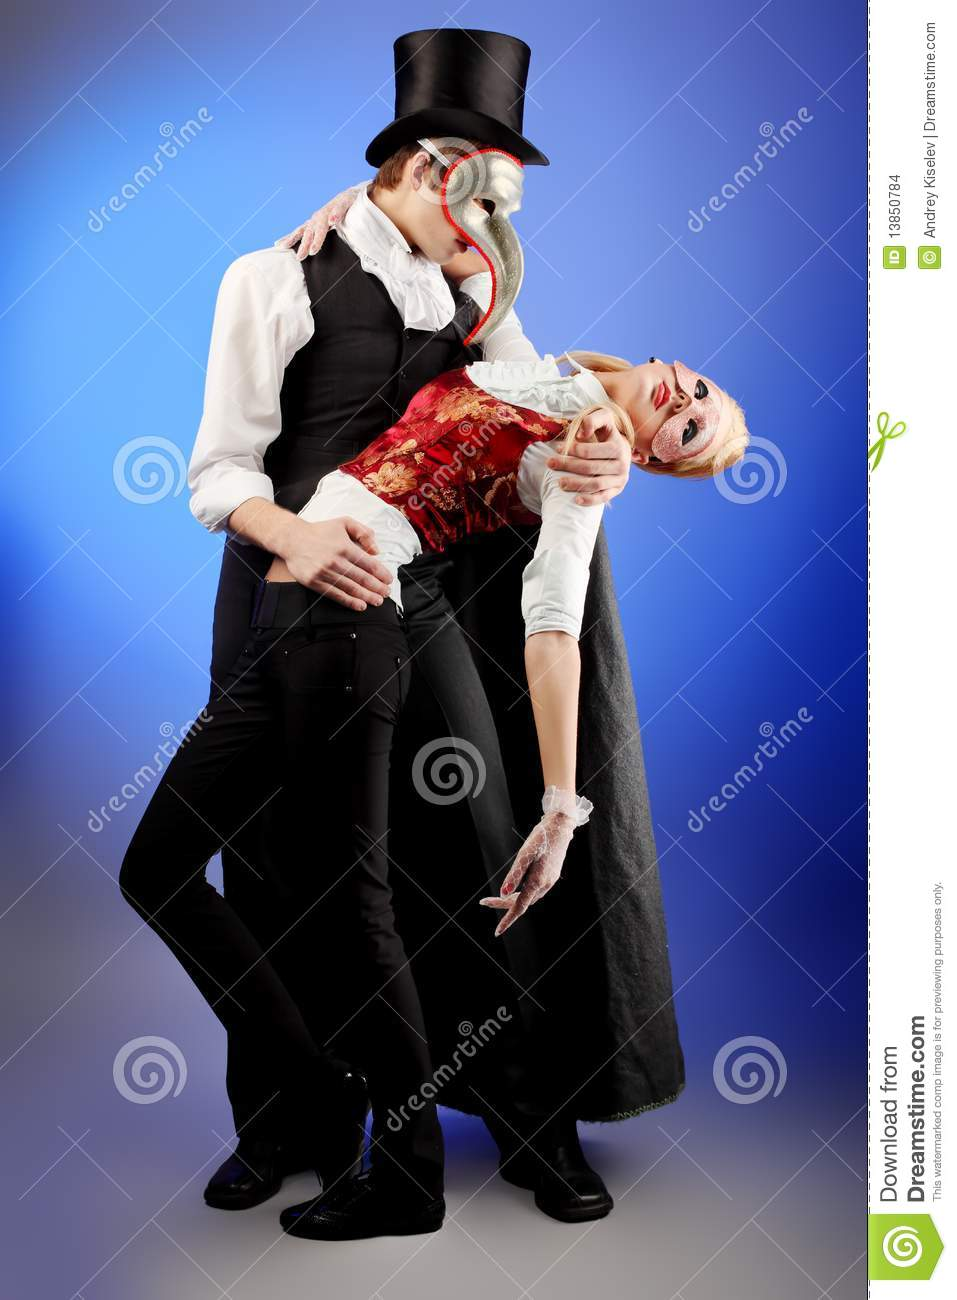 Masquerade Dancing Stock Photo Image Of Festive